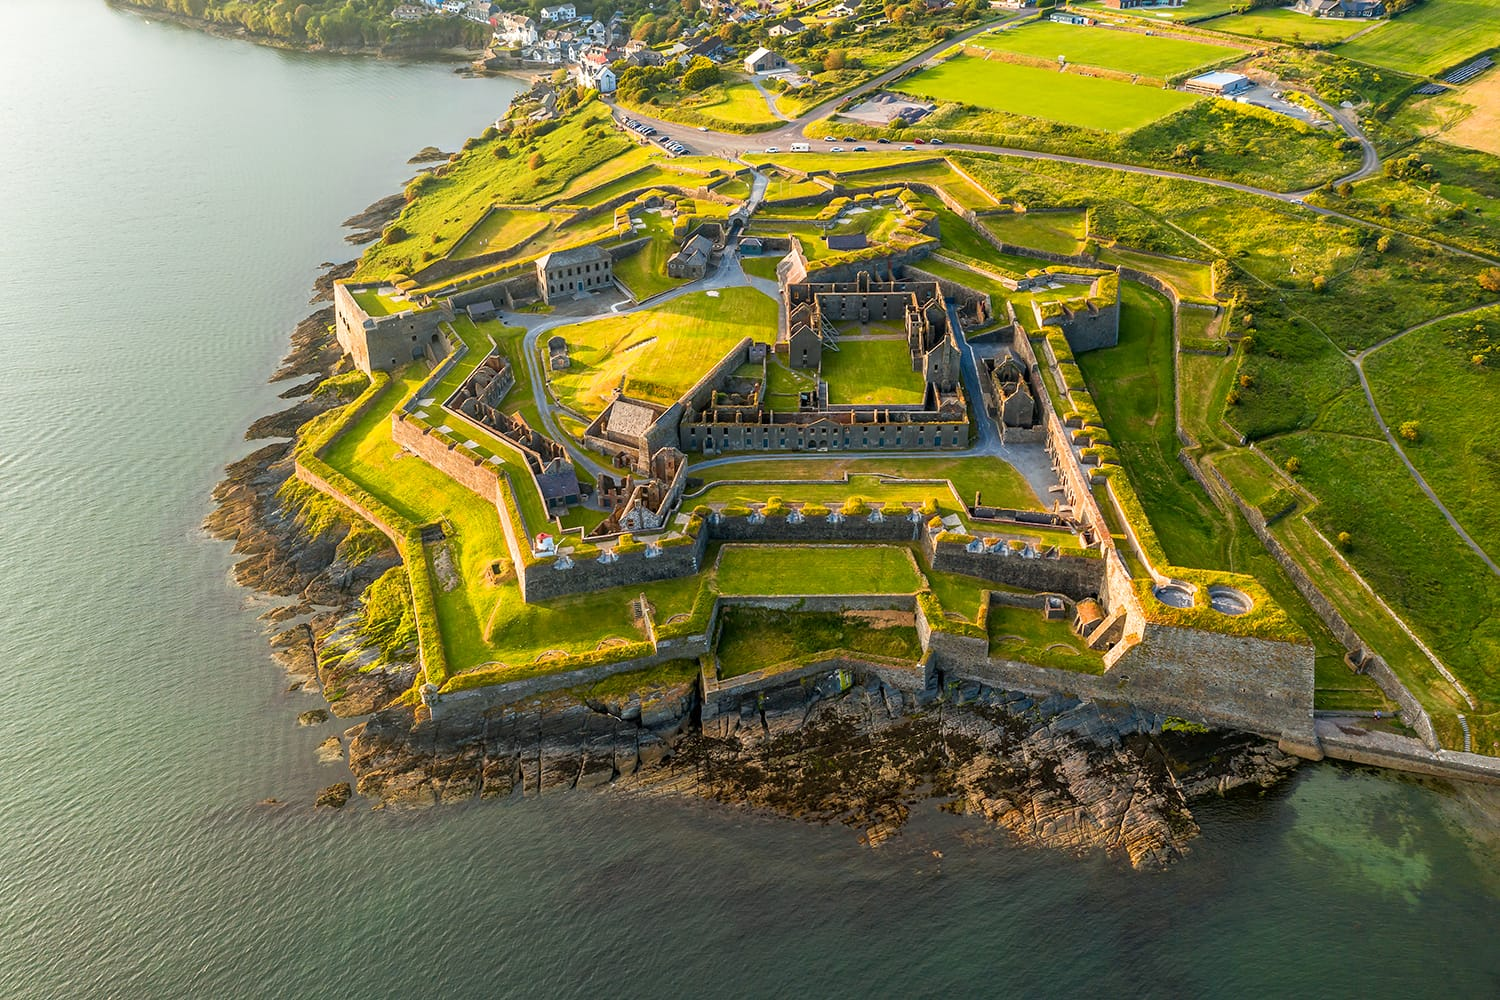 St. Charles Fort in Kinsale, County Cork, Ireland